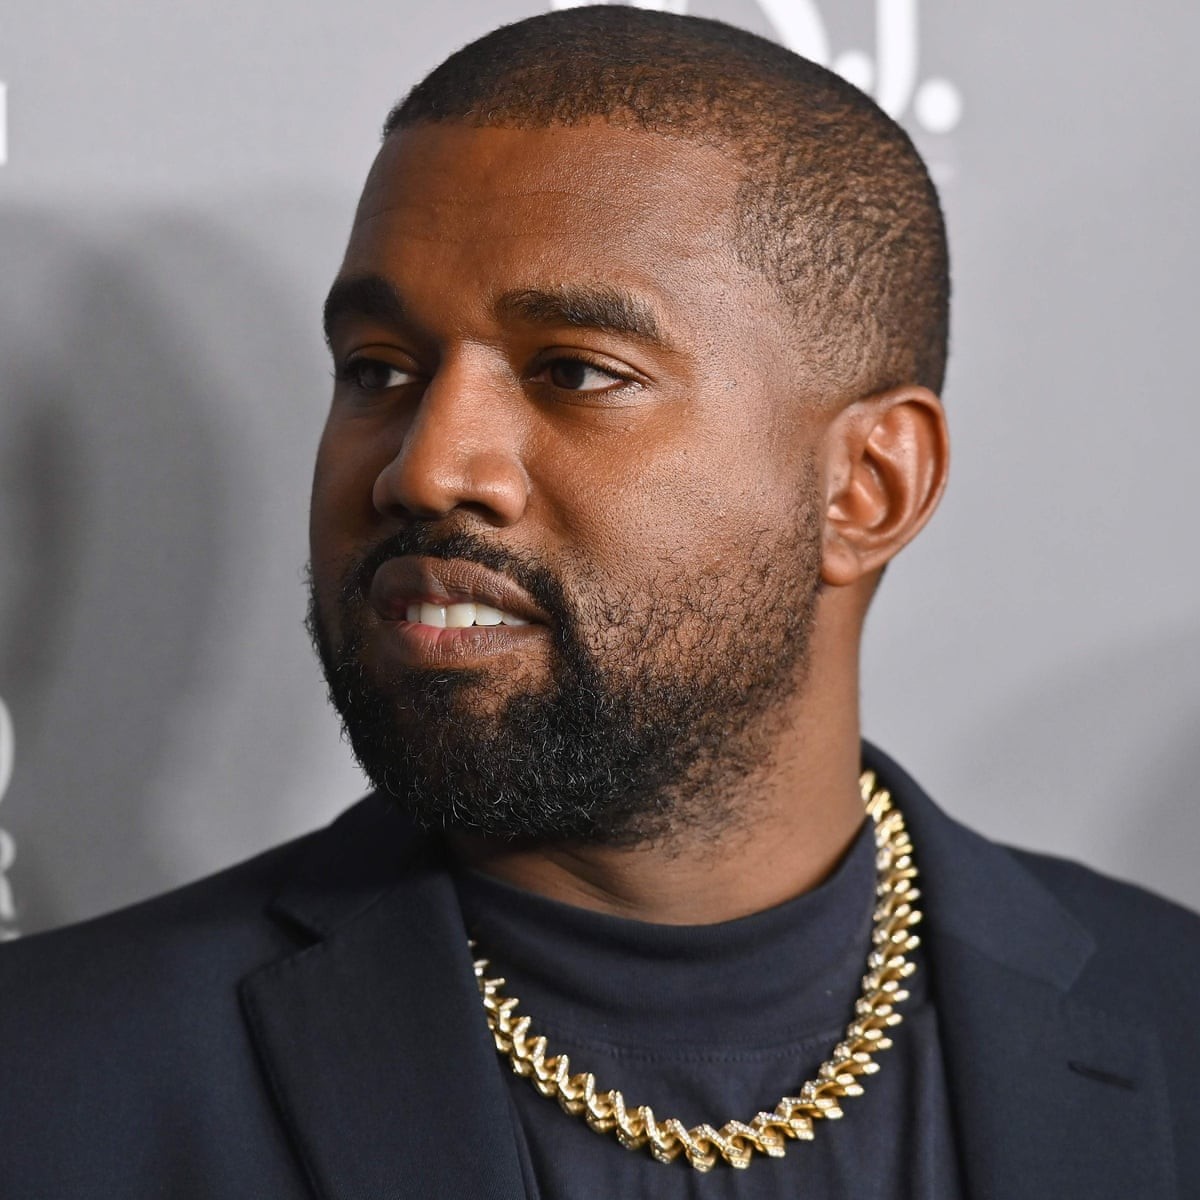 WATCH: Kanye West And The Other Billionaires Who Received PPP Loans From Government Designated For Small Businesses